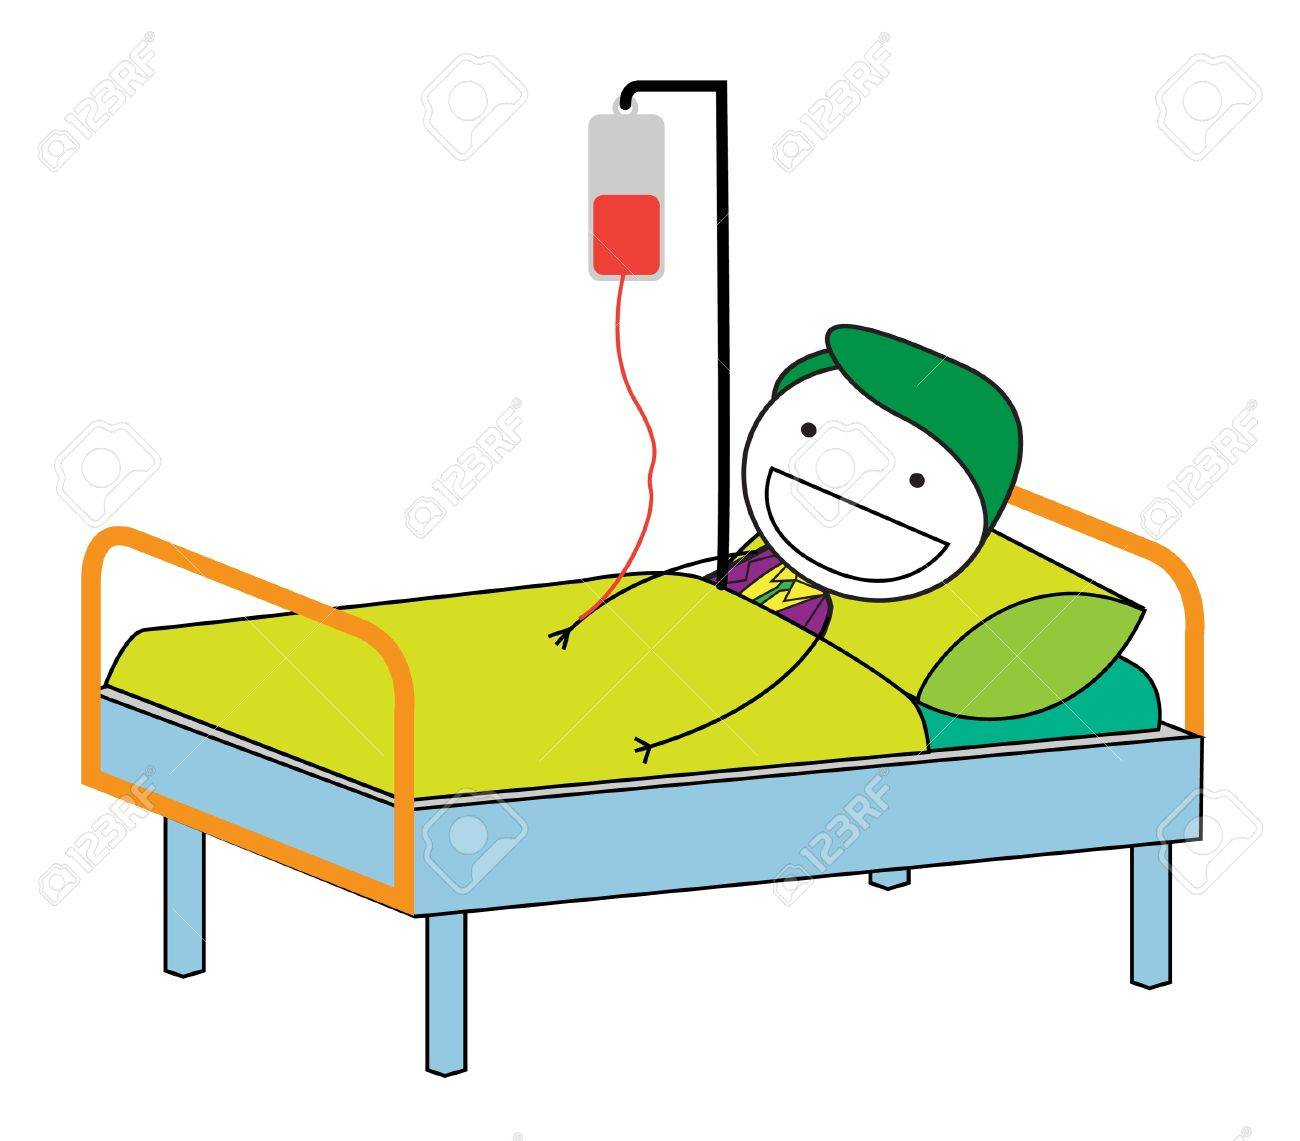 Hospital Bed Cartoon Images Stock Pictures Royalty Free